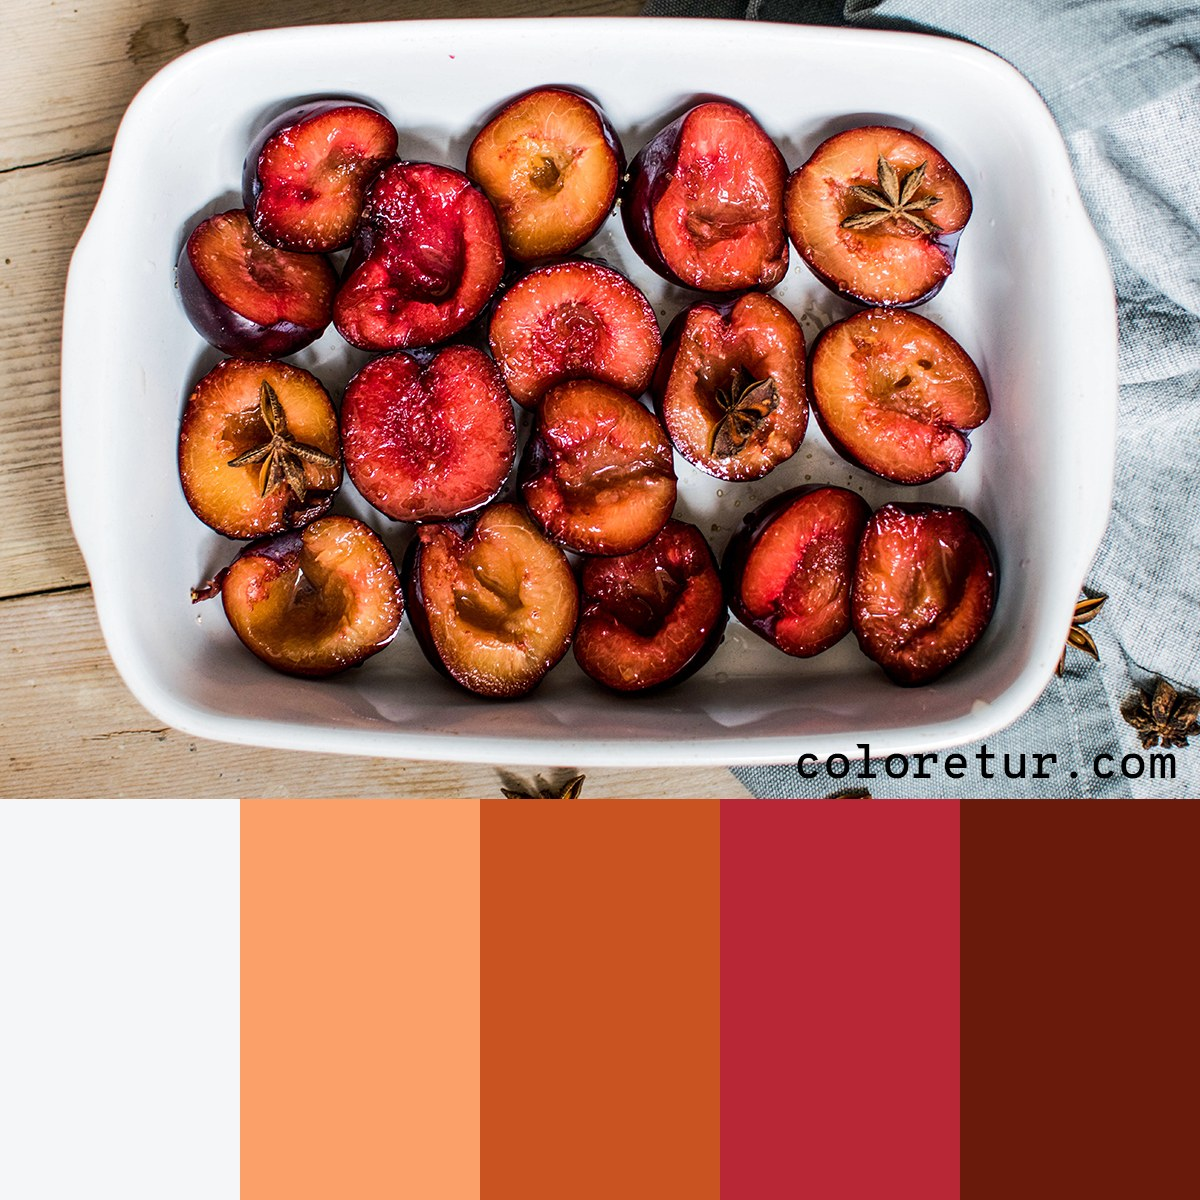 A warm and comforting palette from a tray of traditionally baked stone fruits.